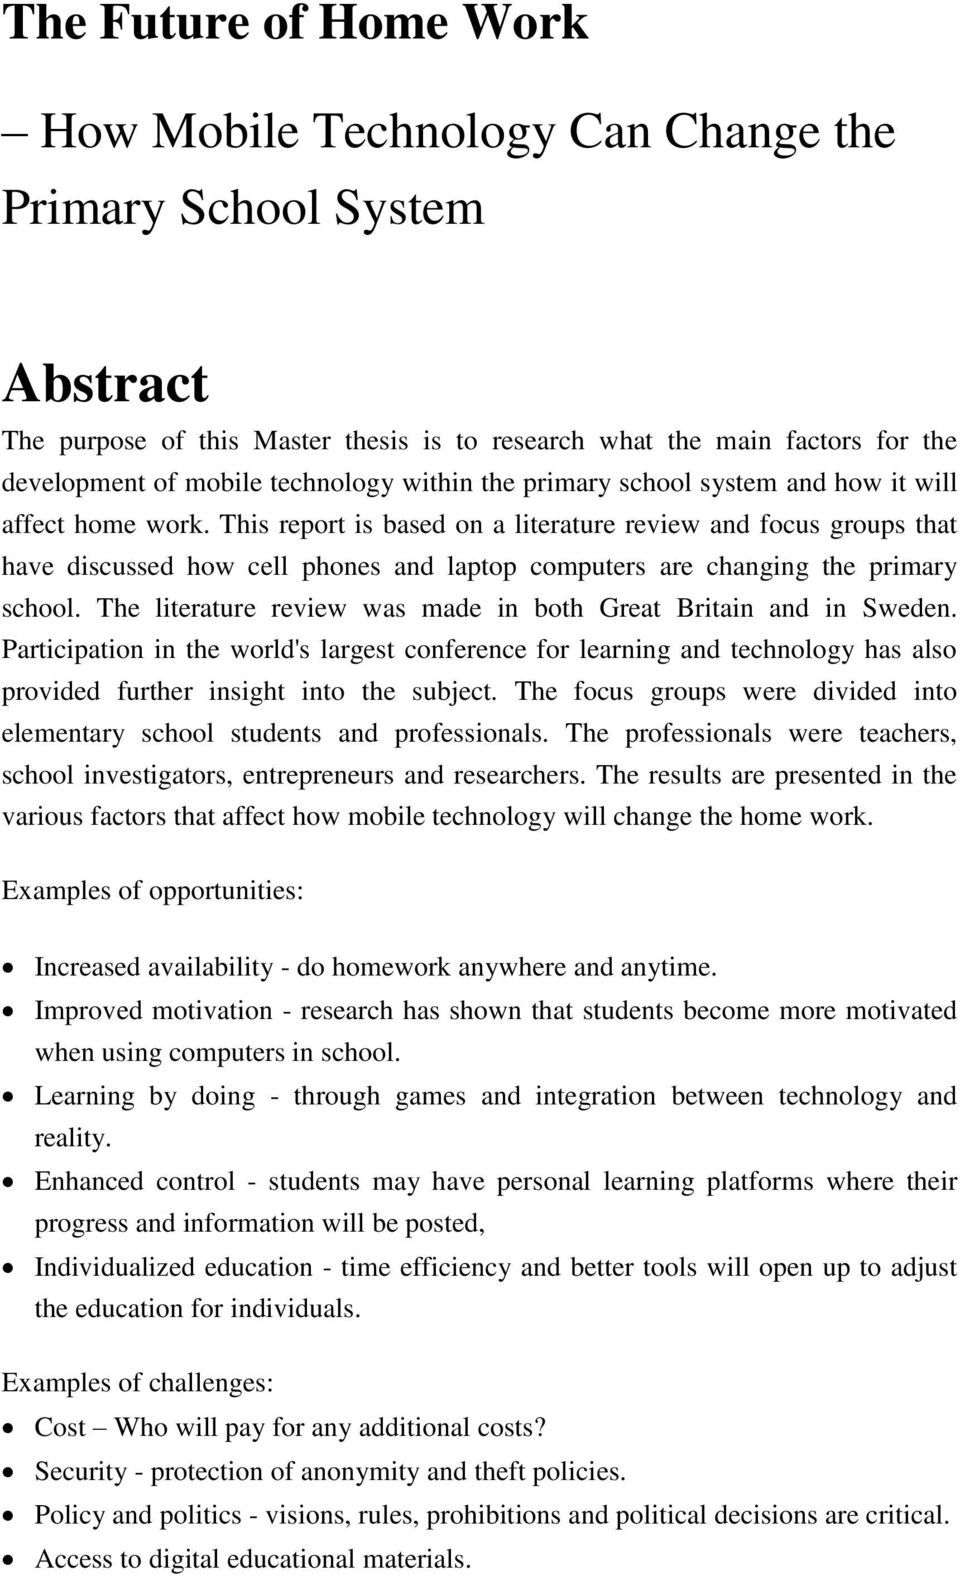 This report is based on a literature review and focus groups that have discussed how cell phones and laptop computers are changing the primary school.